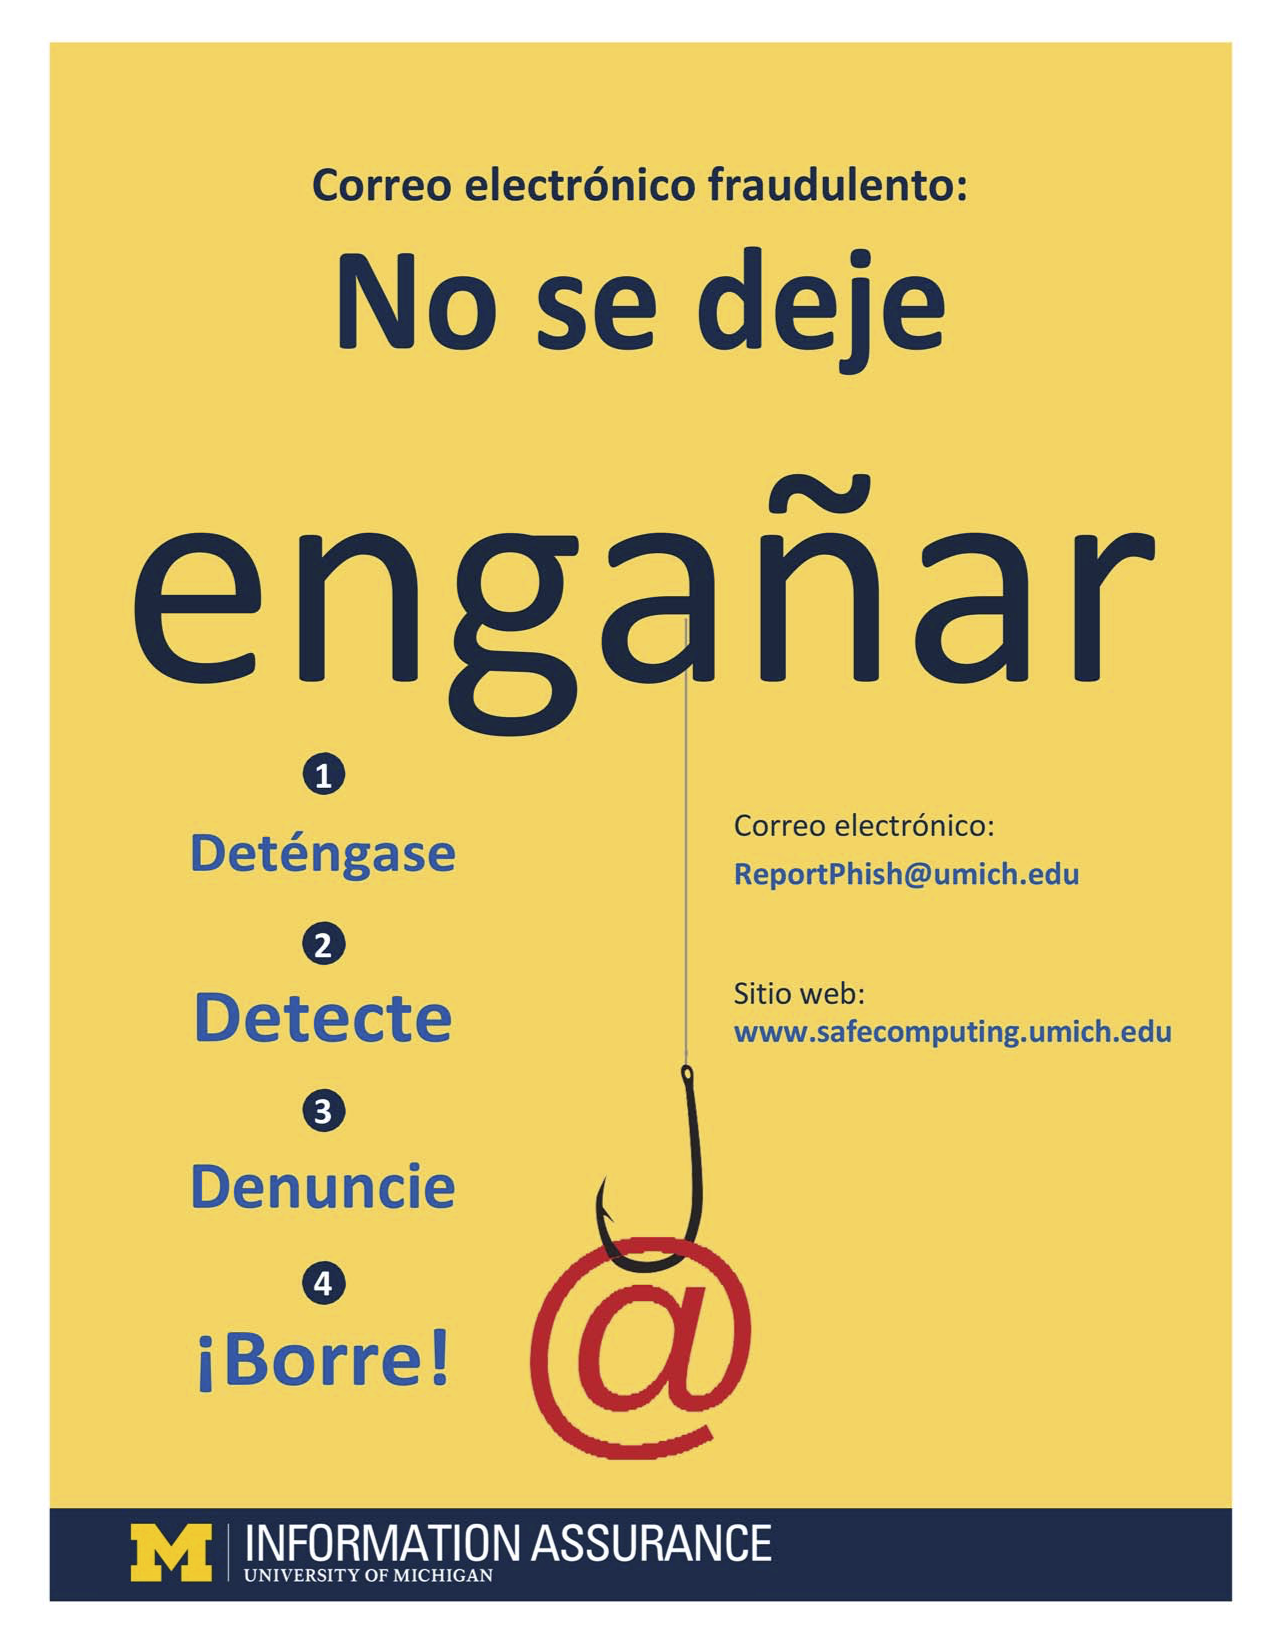 Image of the anti-phishing poster in Spanish.